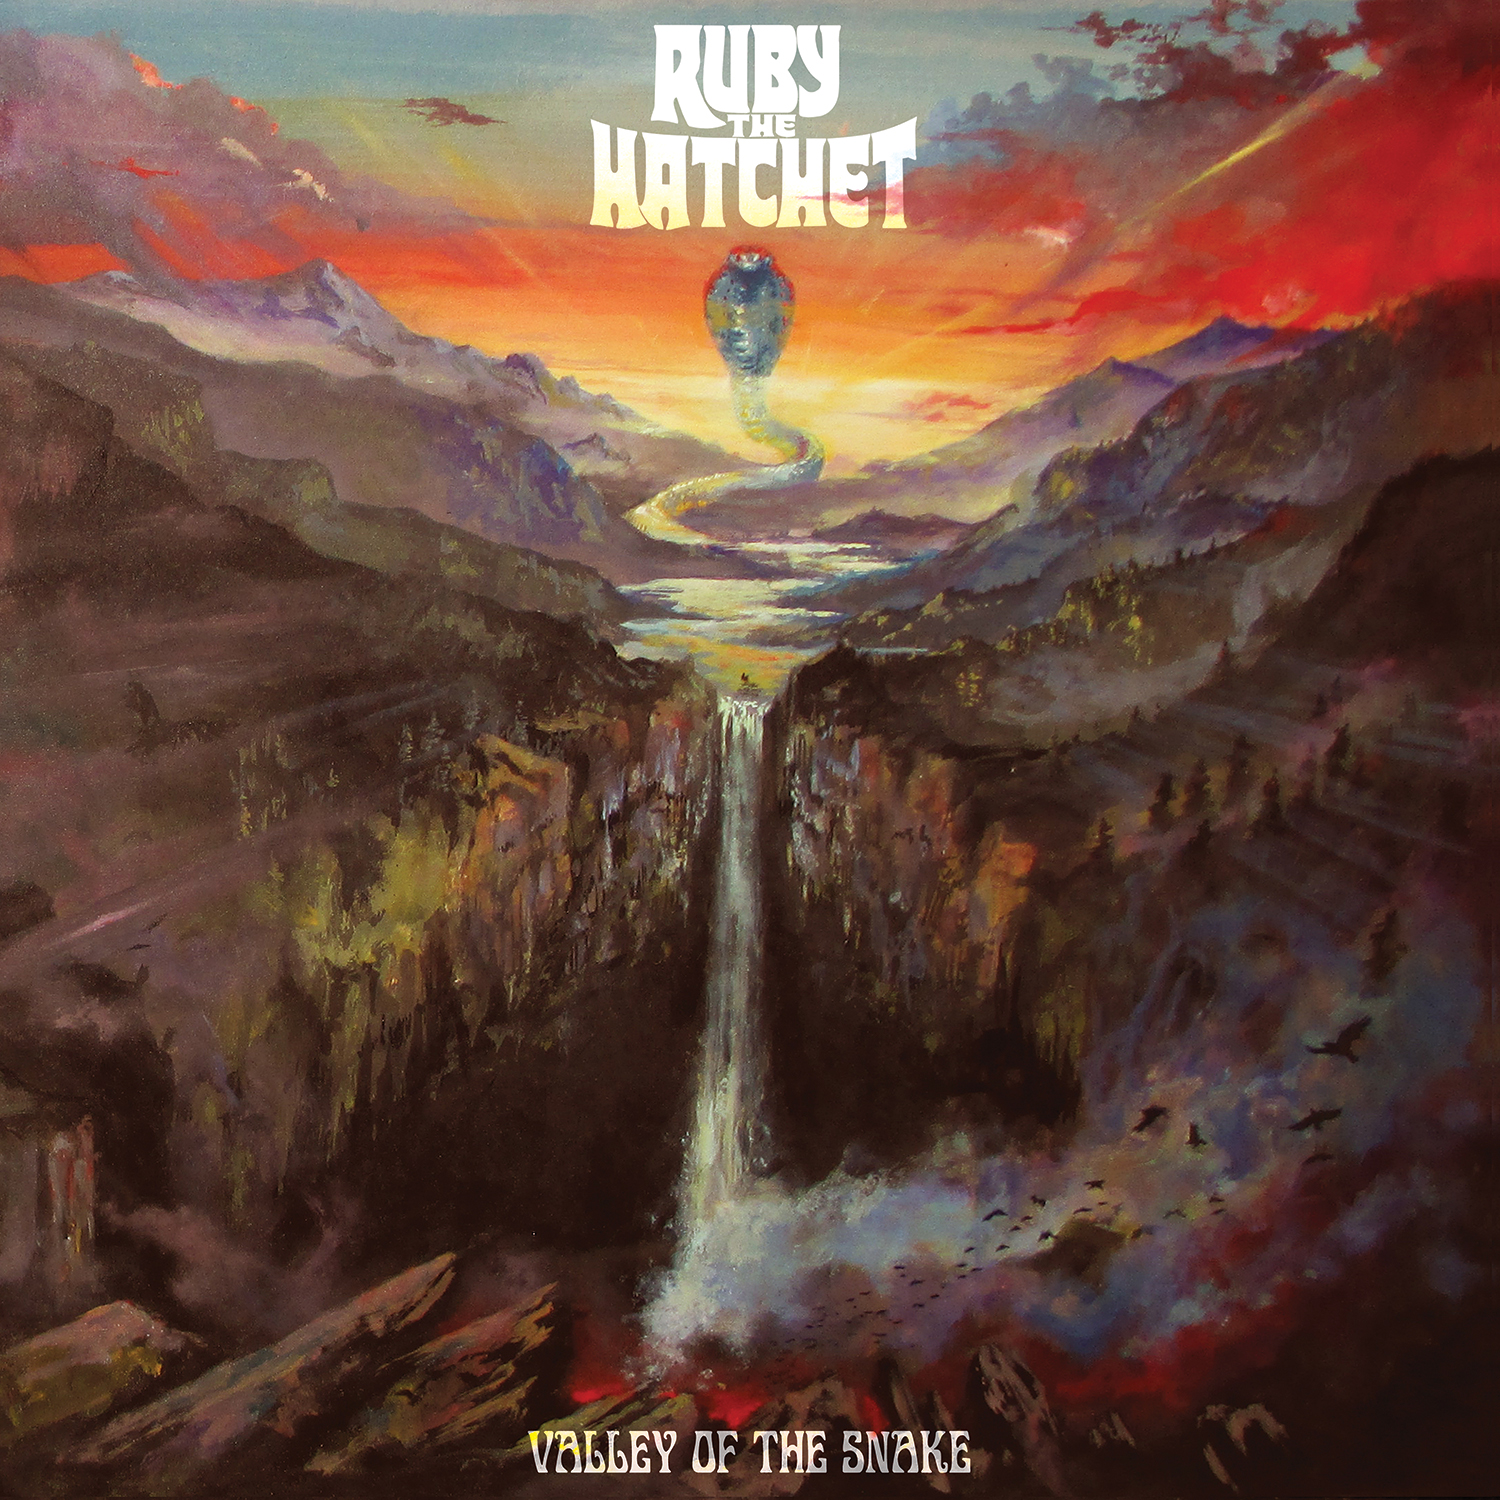 Ruby the Hatchet – Valley of the Snake Review